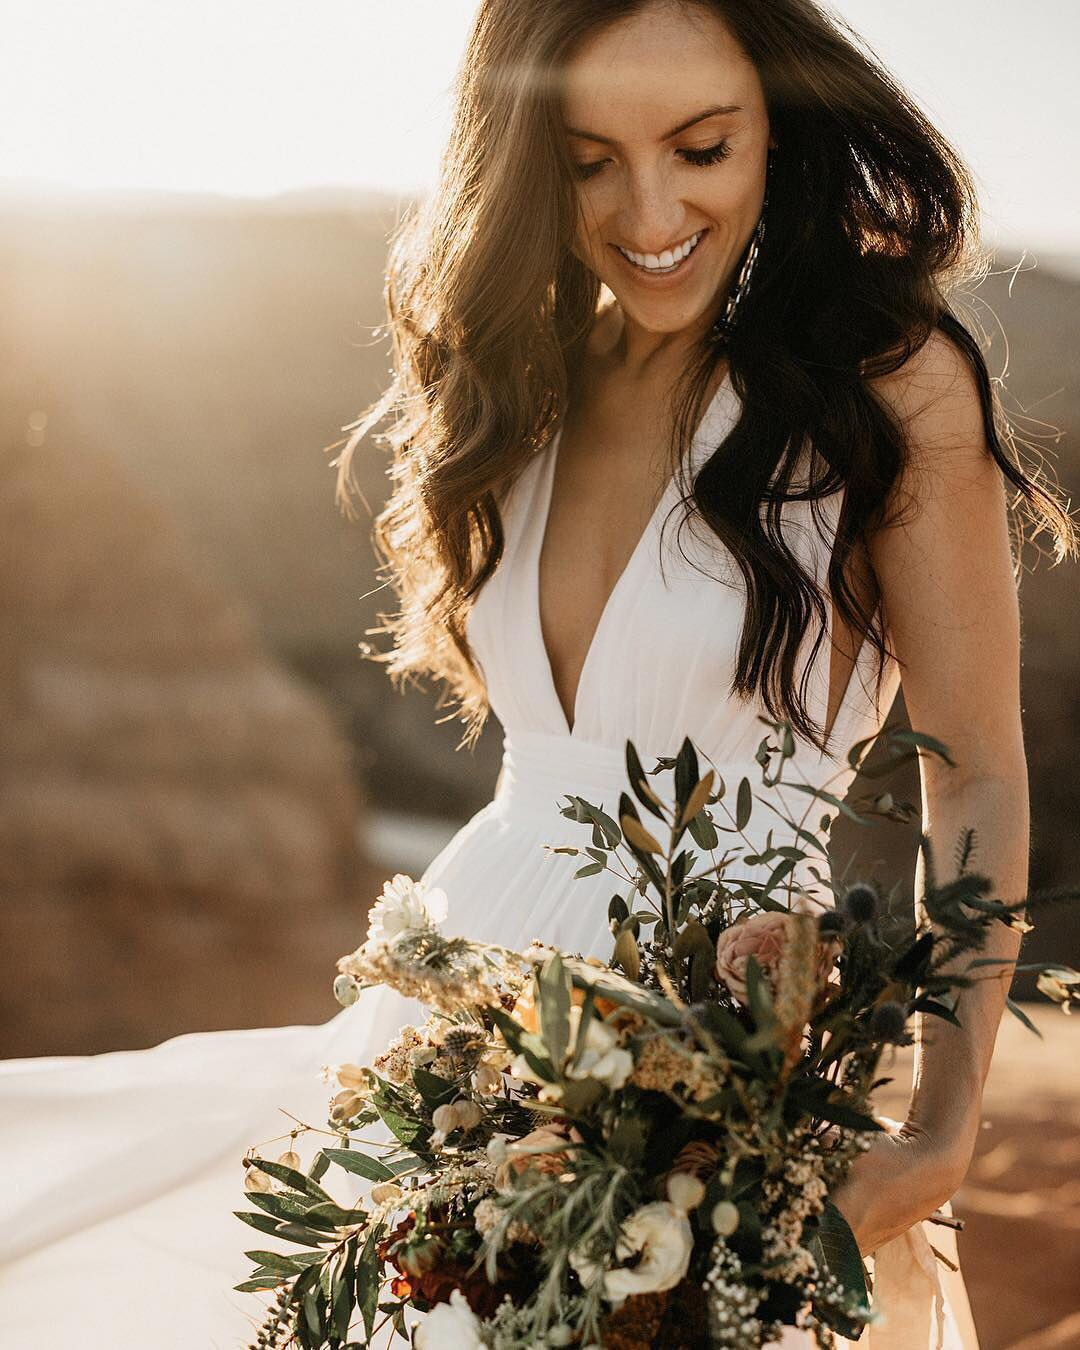 What To Wear Under Every Type Of Wedding Dress According To A Bra Expert Lulus Com Fashion Blog